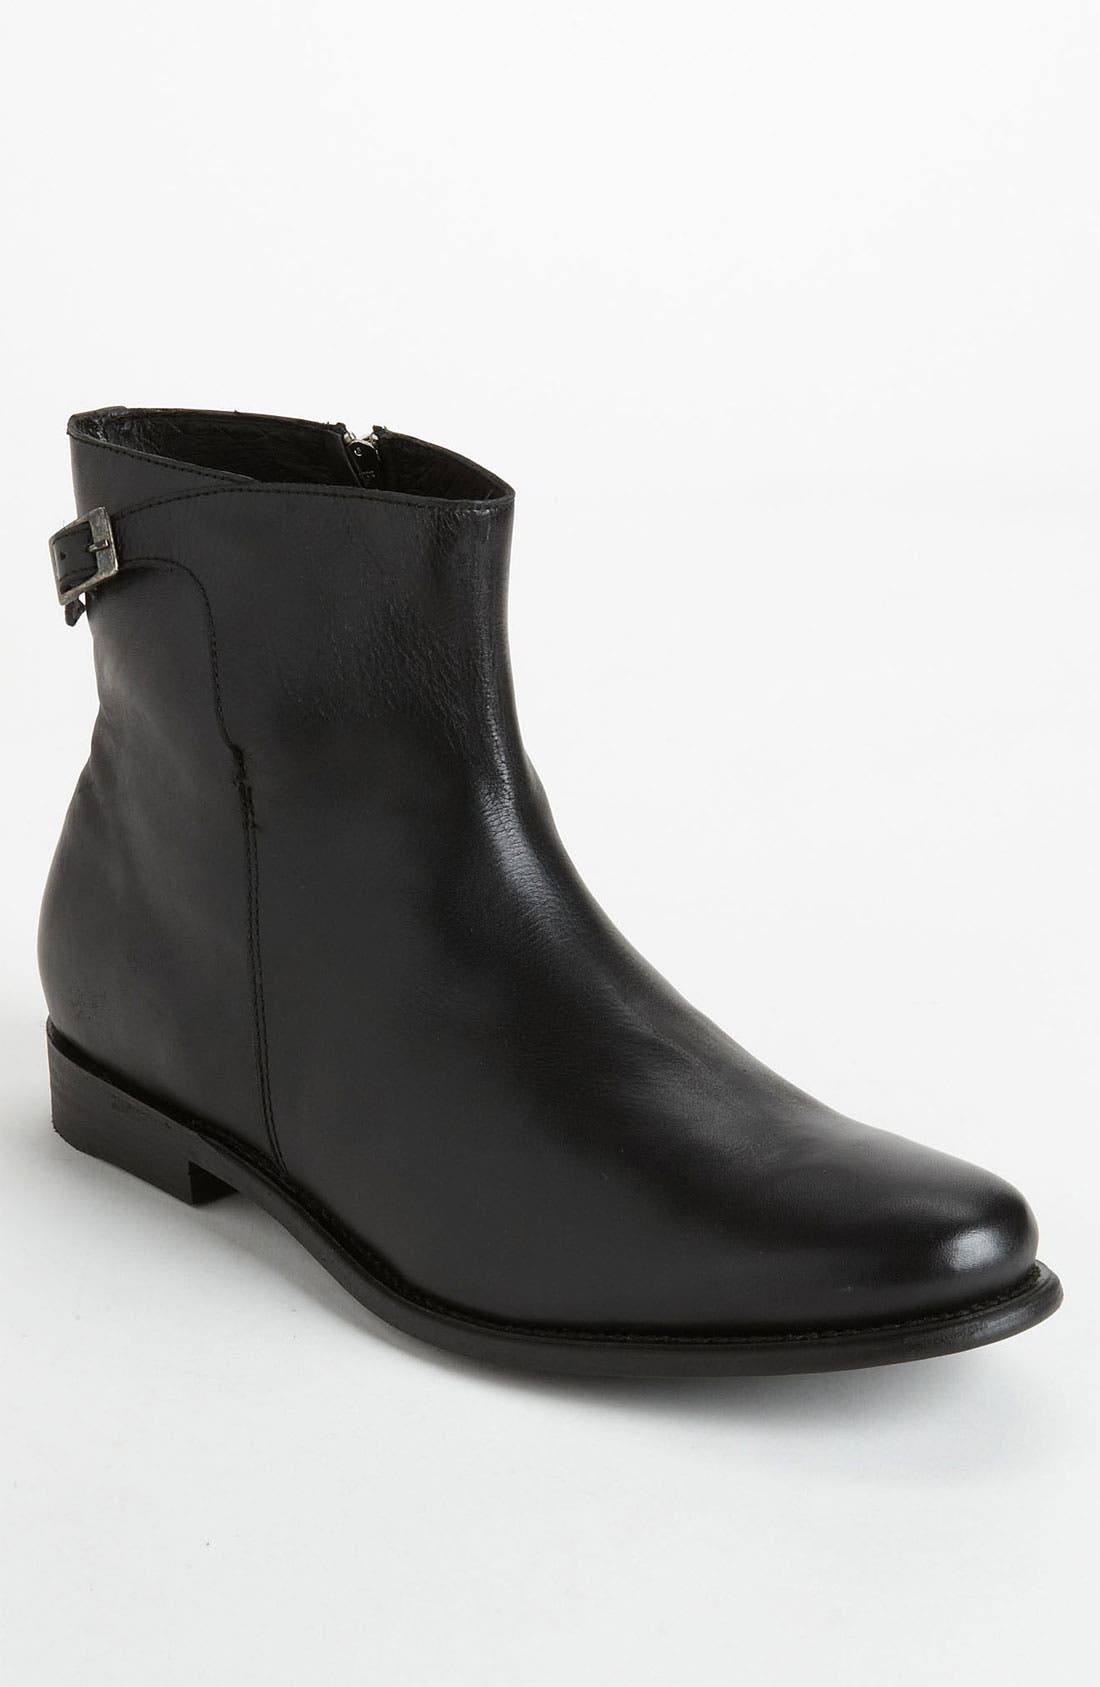 Main Image - J.D. Fisk 'Franky' Plain Toe Boot (Online Only)